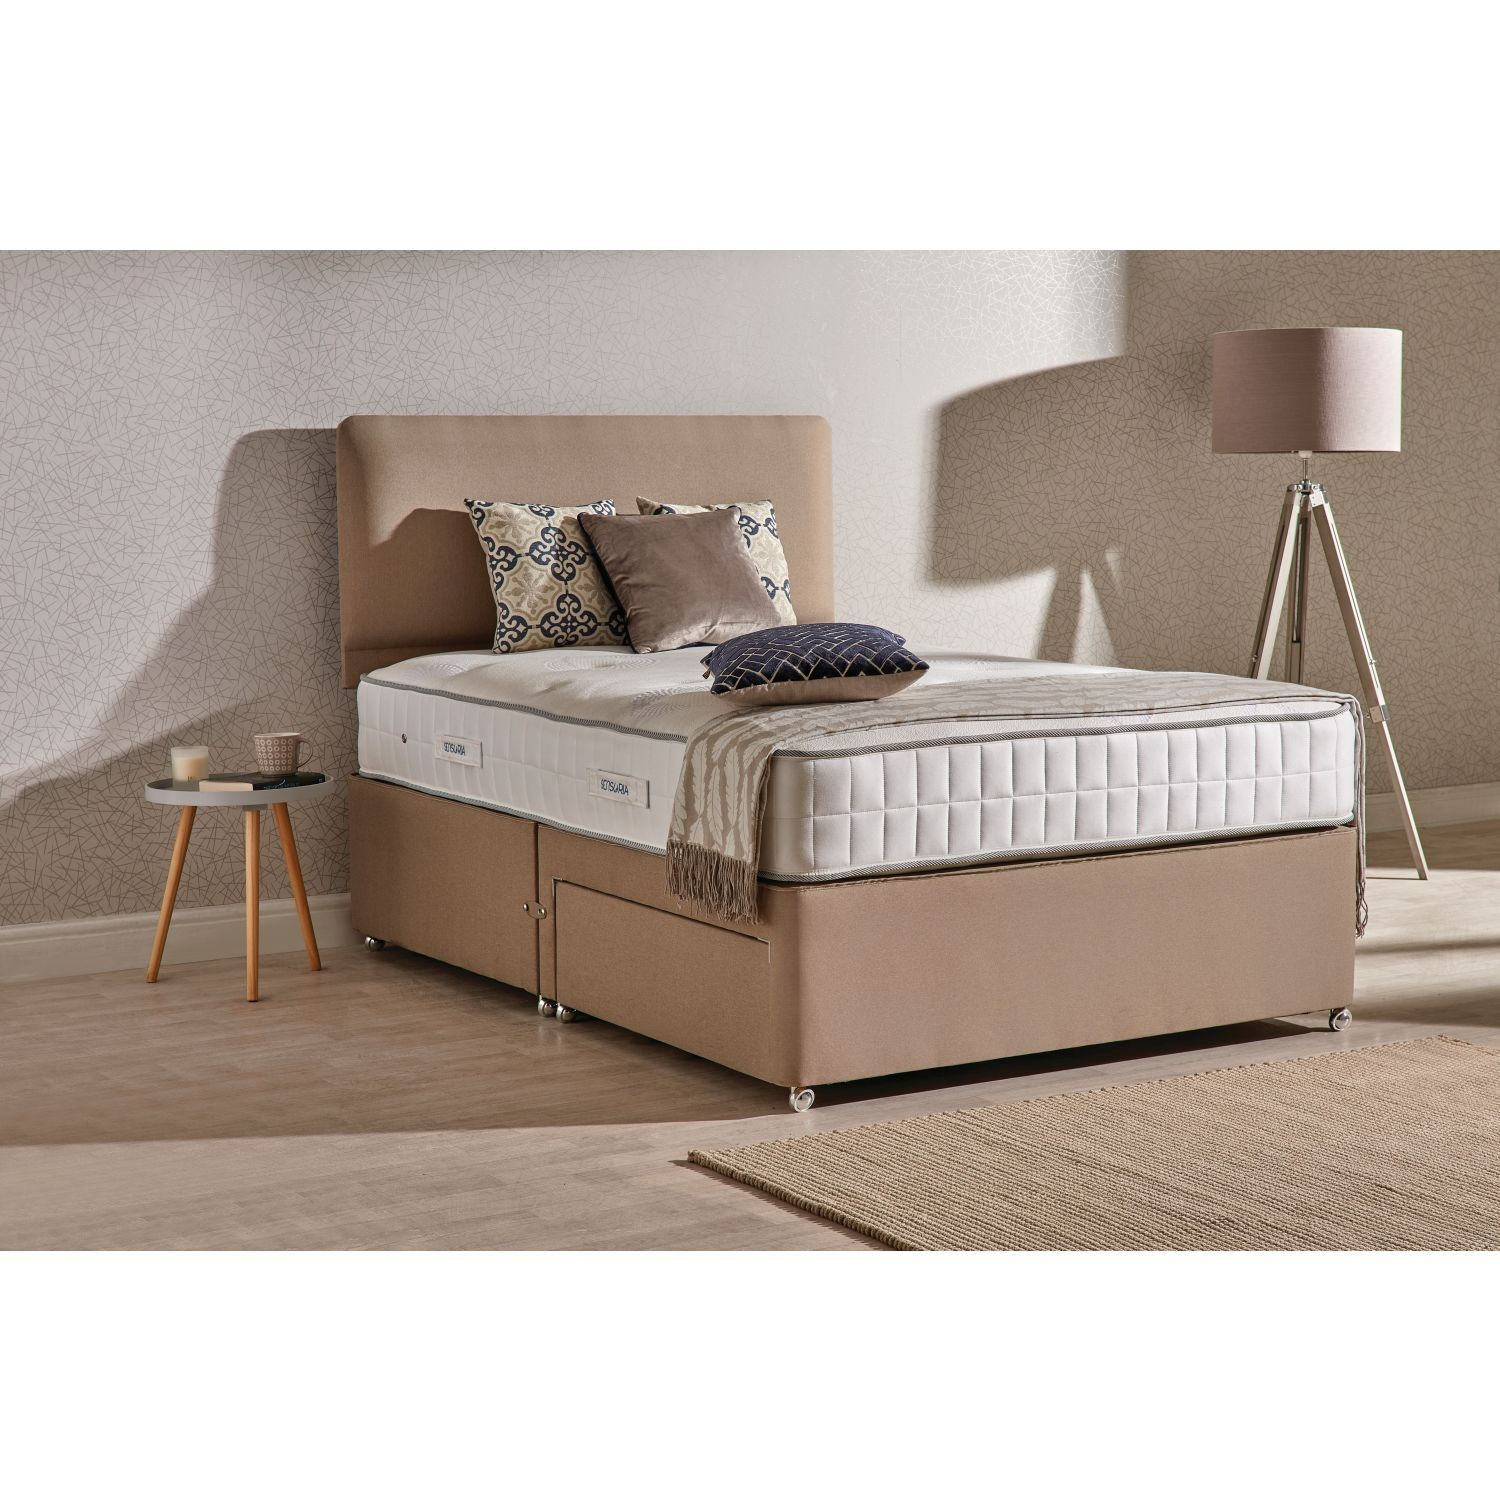 Double Divan Beds Sleepeezee Roma 800 2 Drawer Divan Bed Set Double